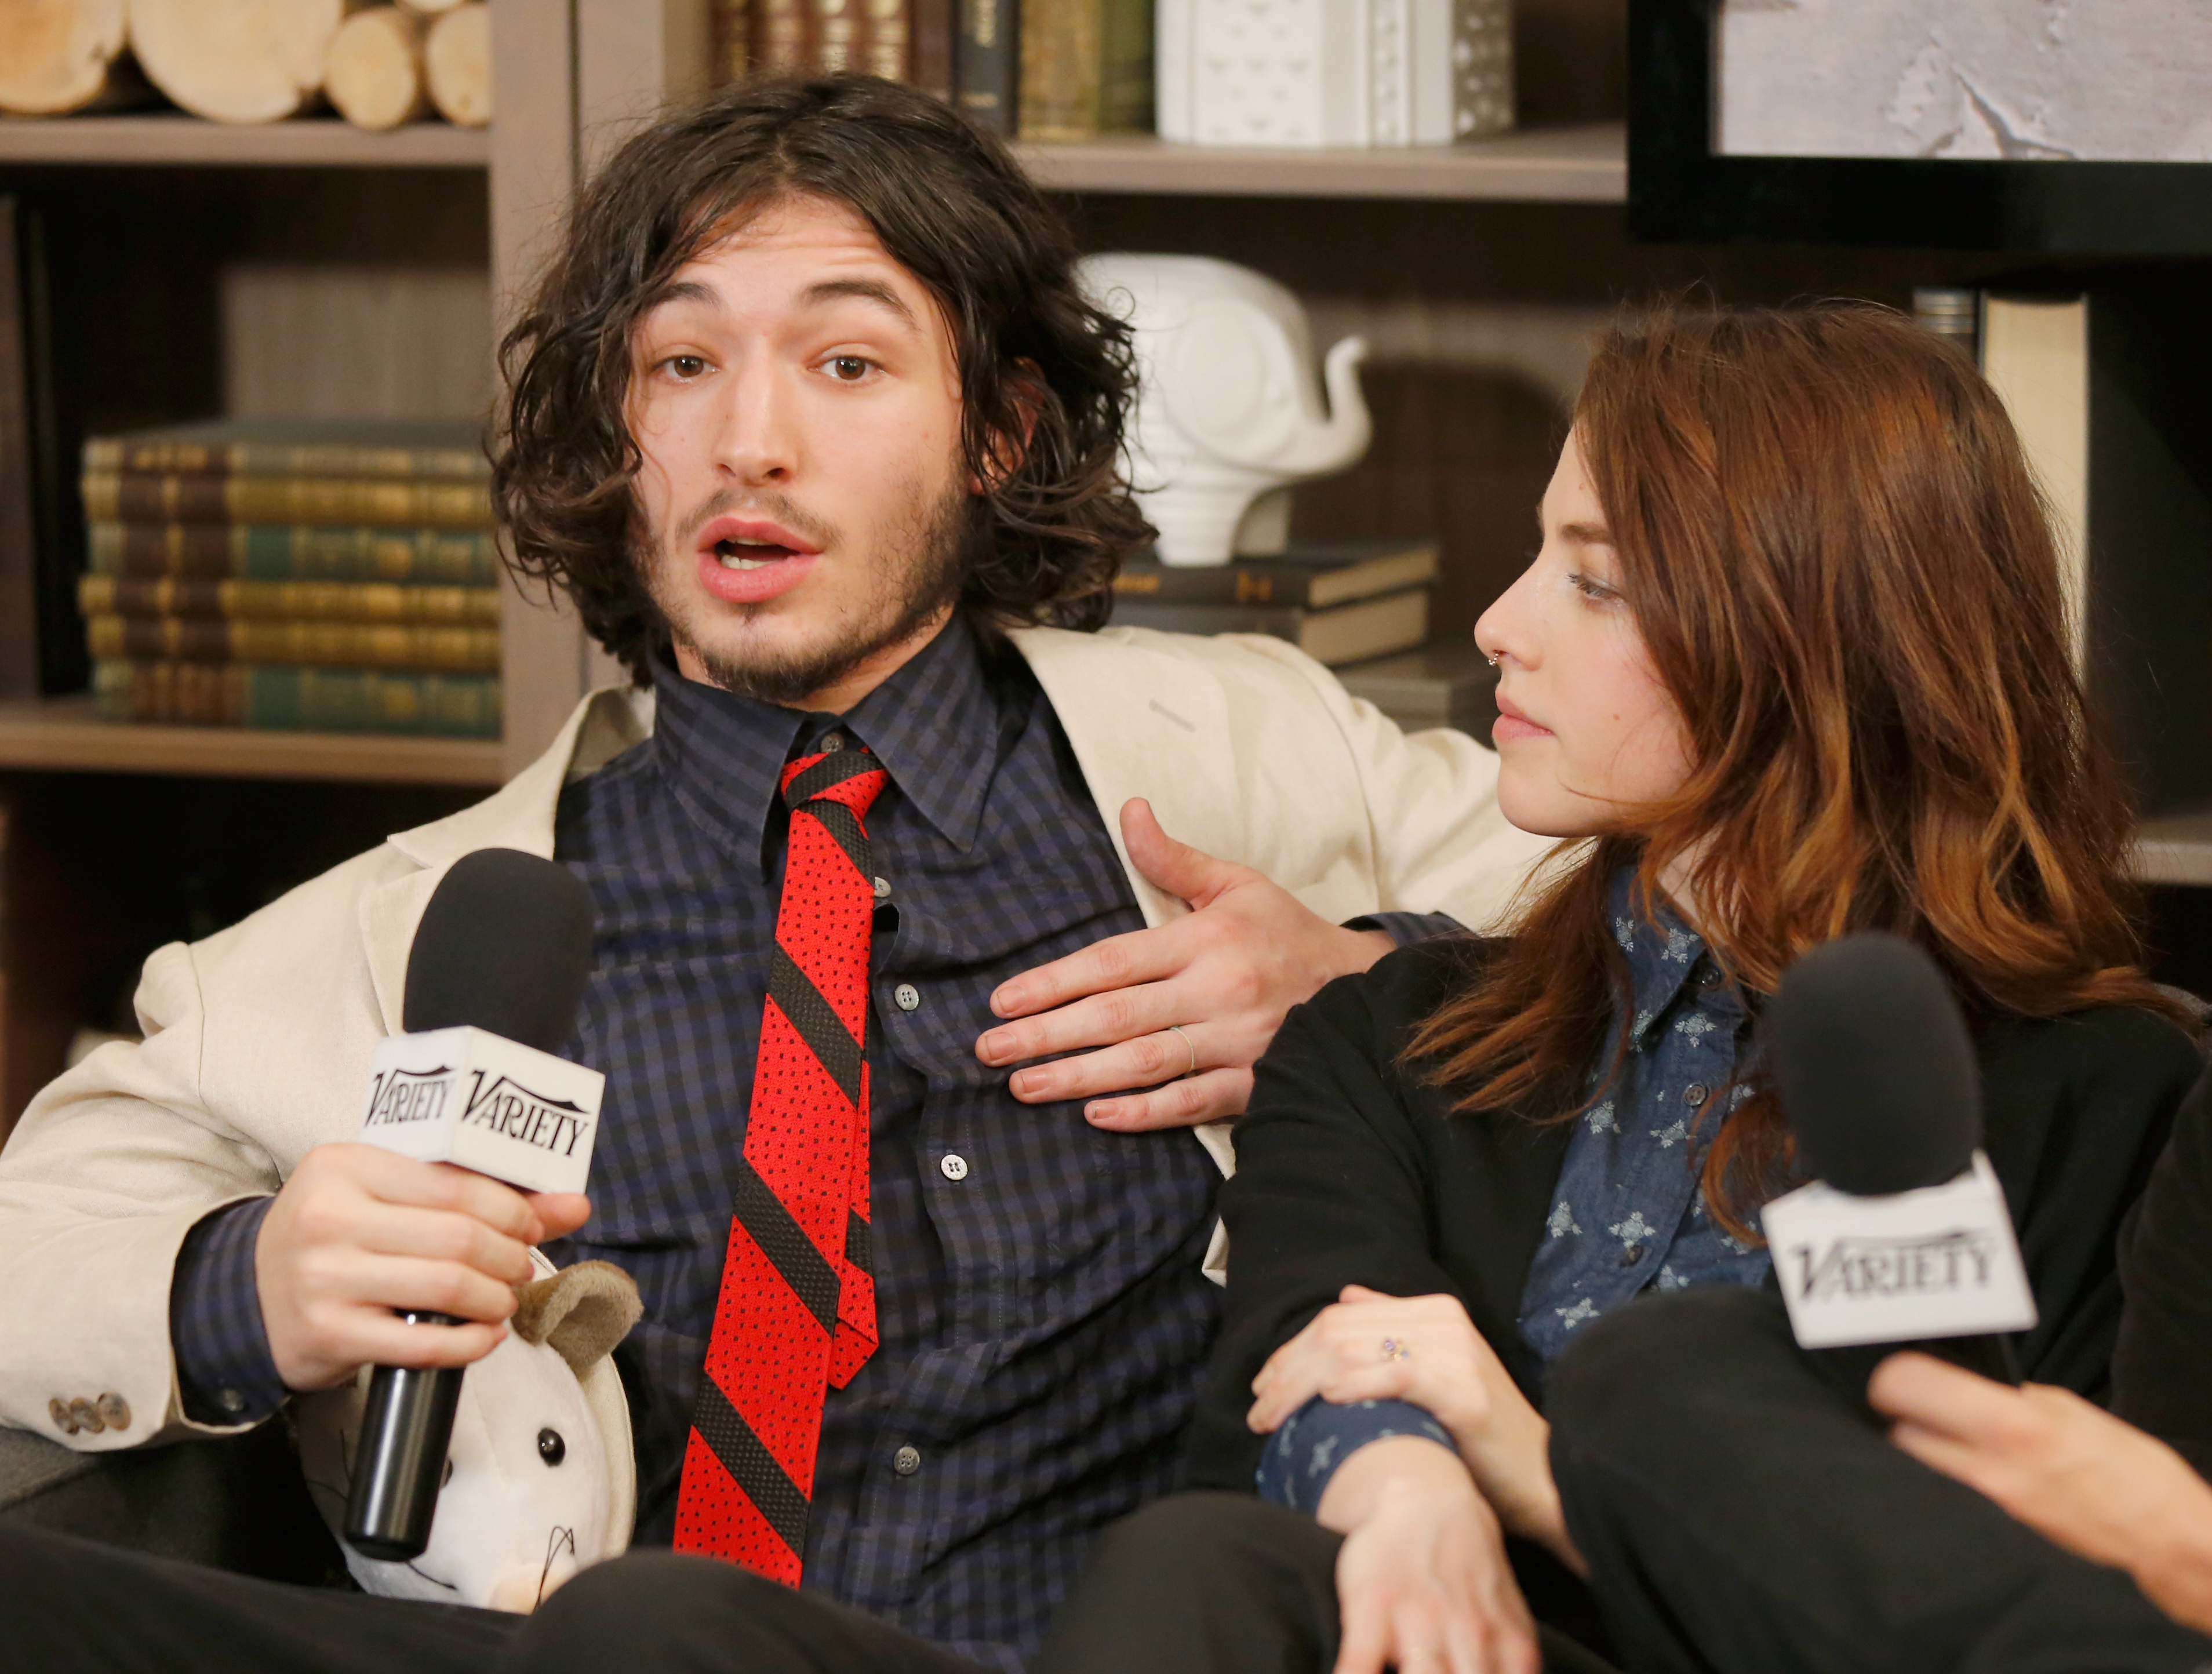 Ezra Miller and Olivia Thirlby at the Sundance Film Festival in 2015.